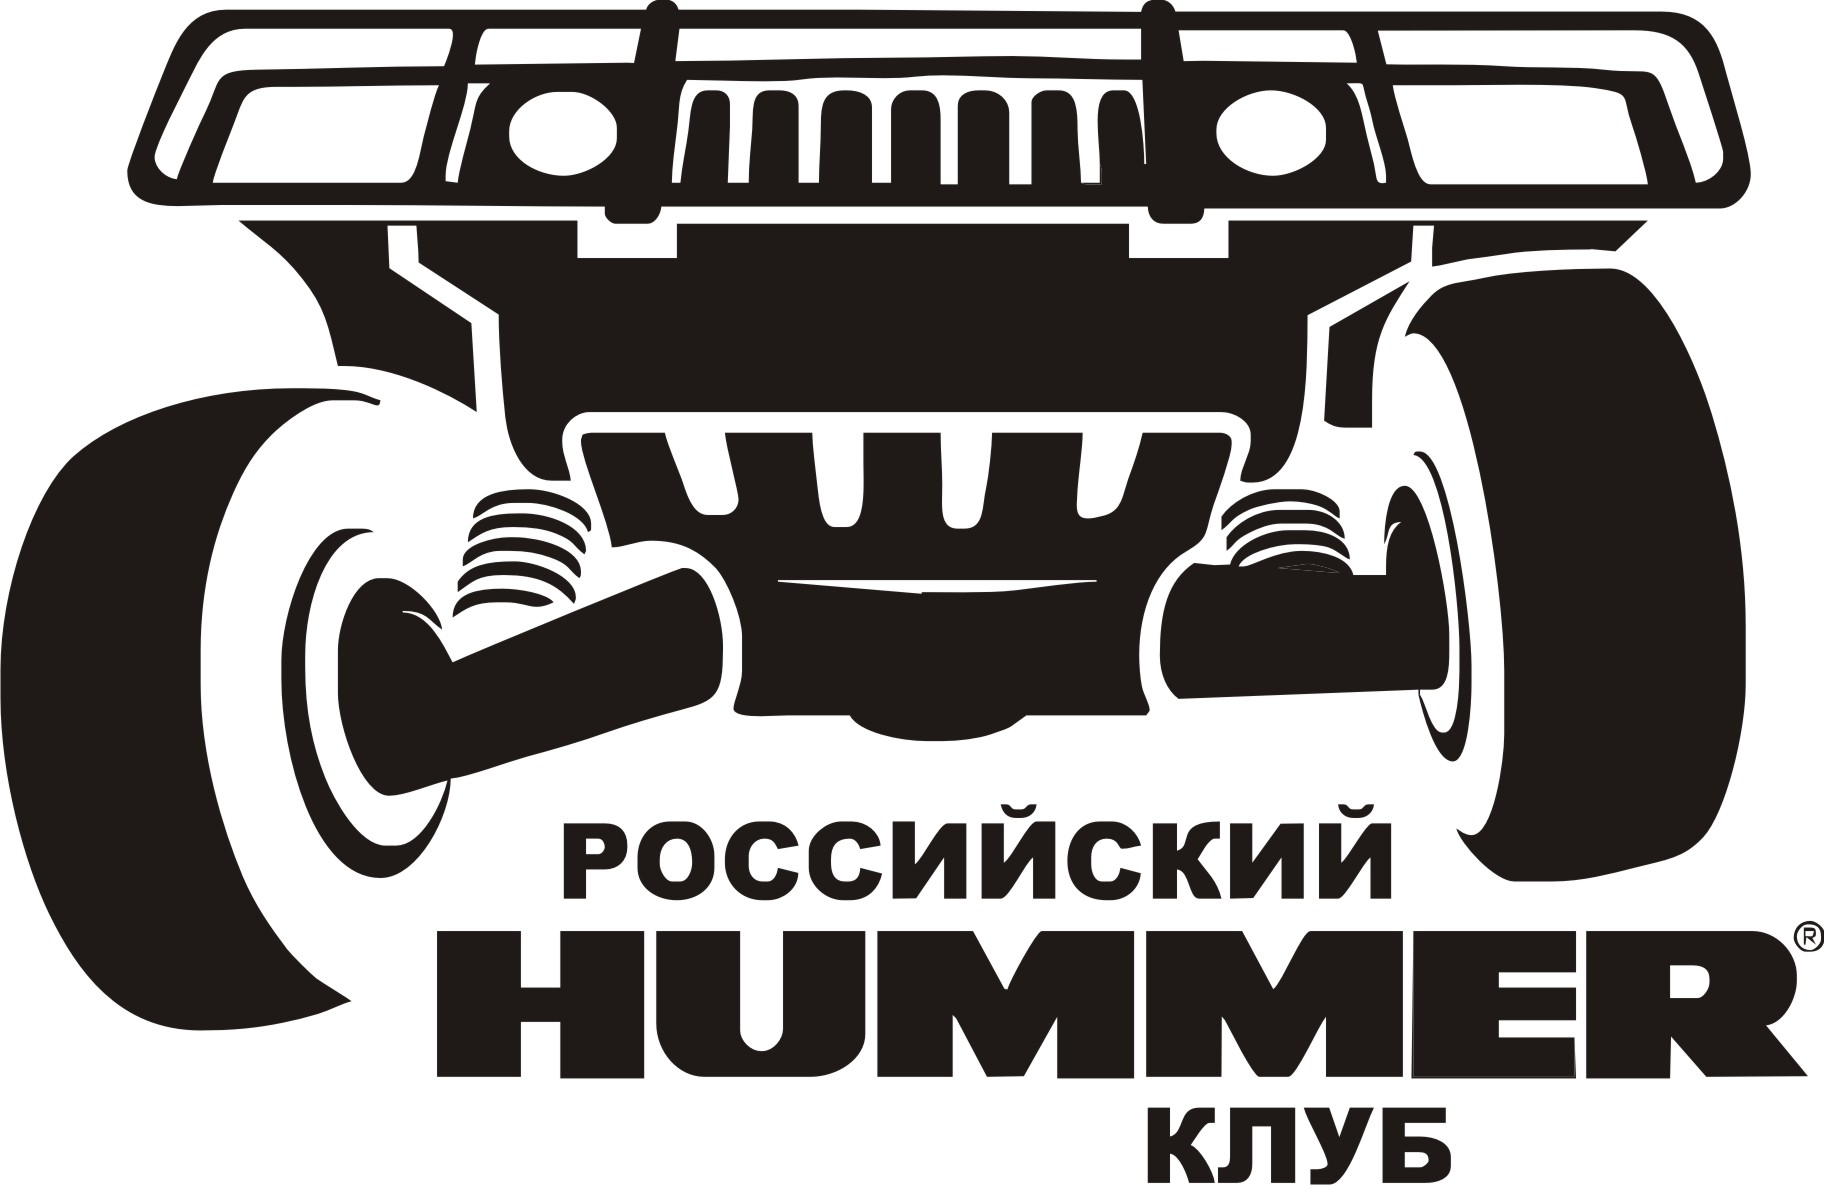 hummer h2 logo pictures to pin on pinterest pinsdaddy